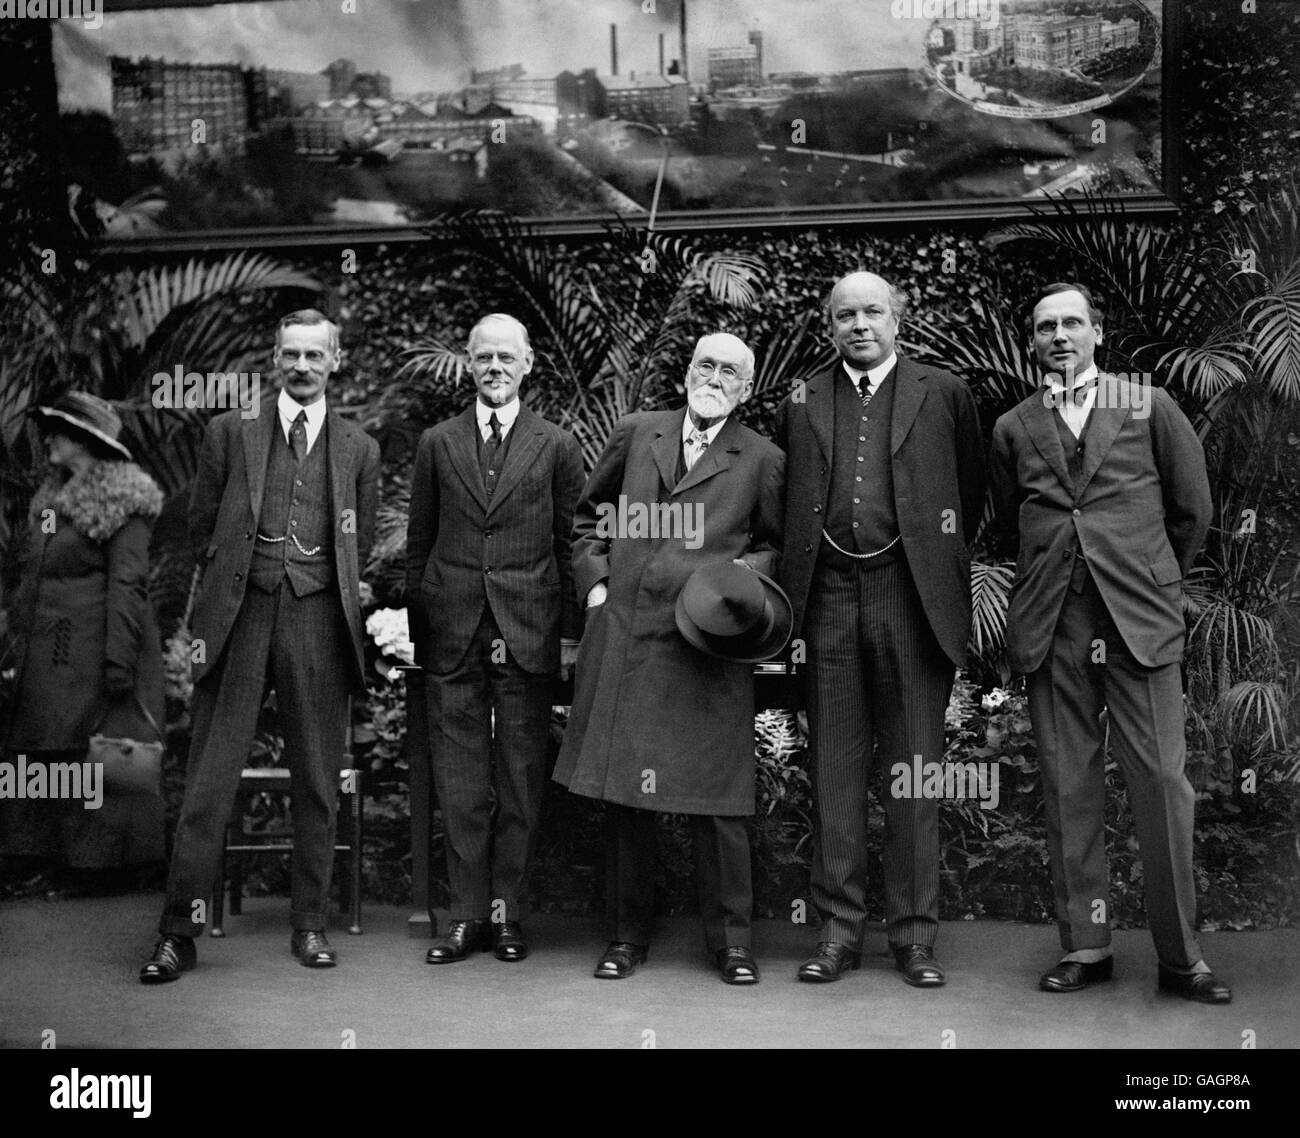 British Industry - Confectionary - The Rowntree Family - York - 1923 - Stock Image